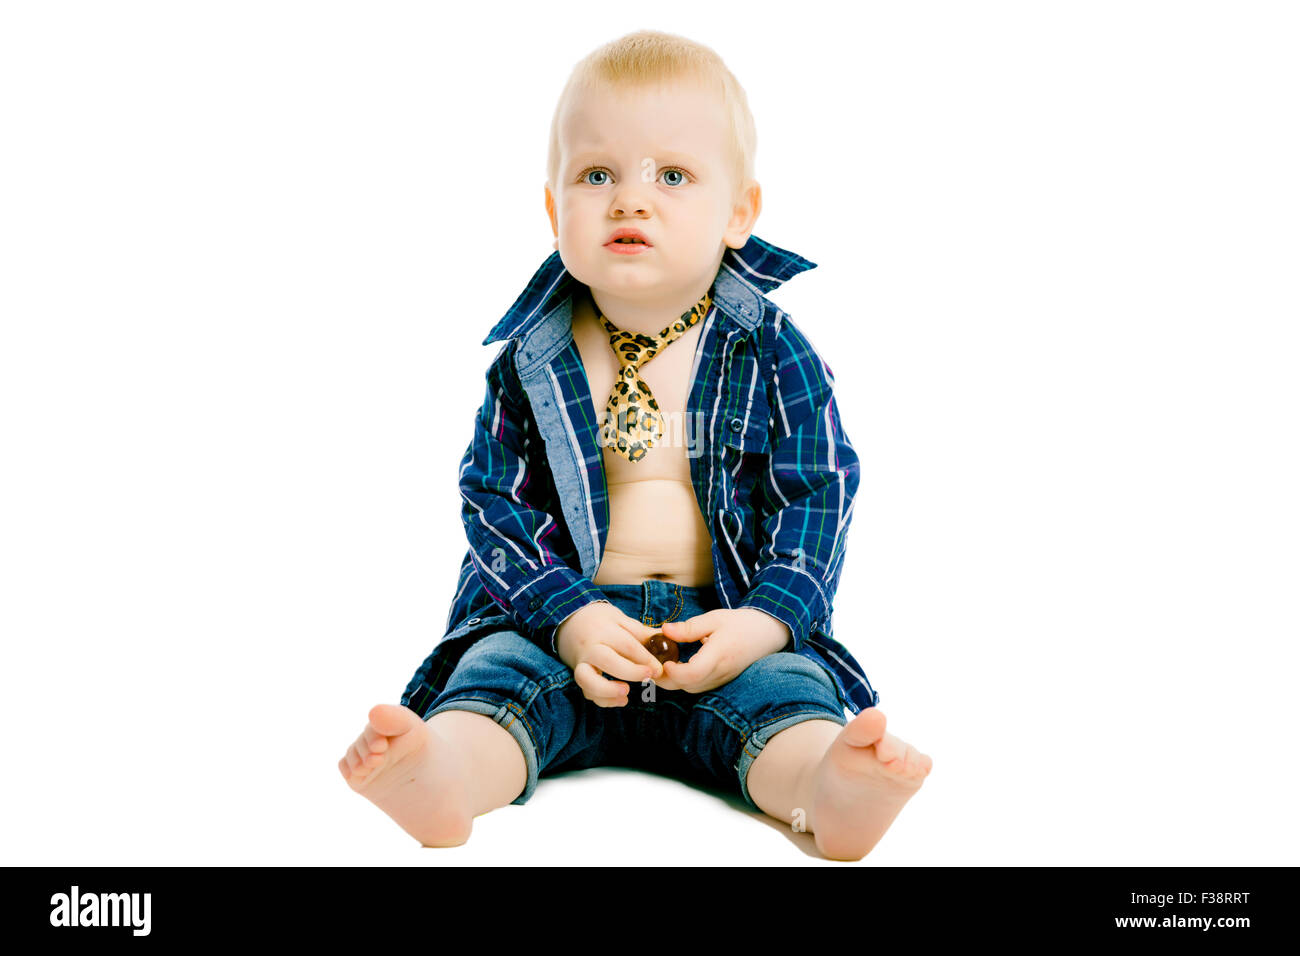 Little dissatisfied boy in a plaid shirt, tie and jeans on a white background - Stock Image